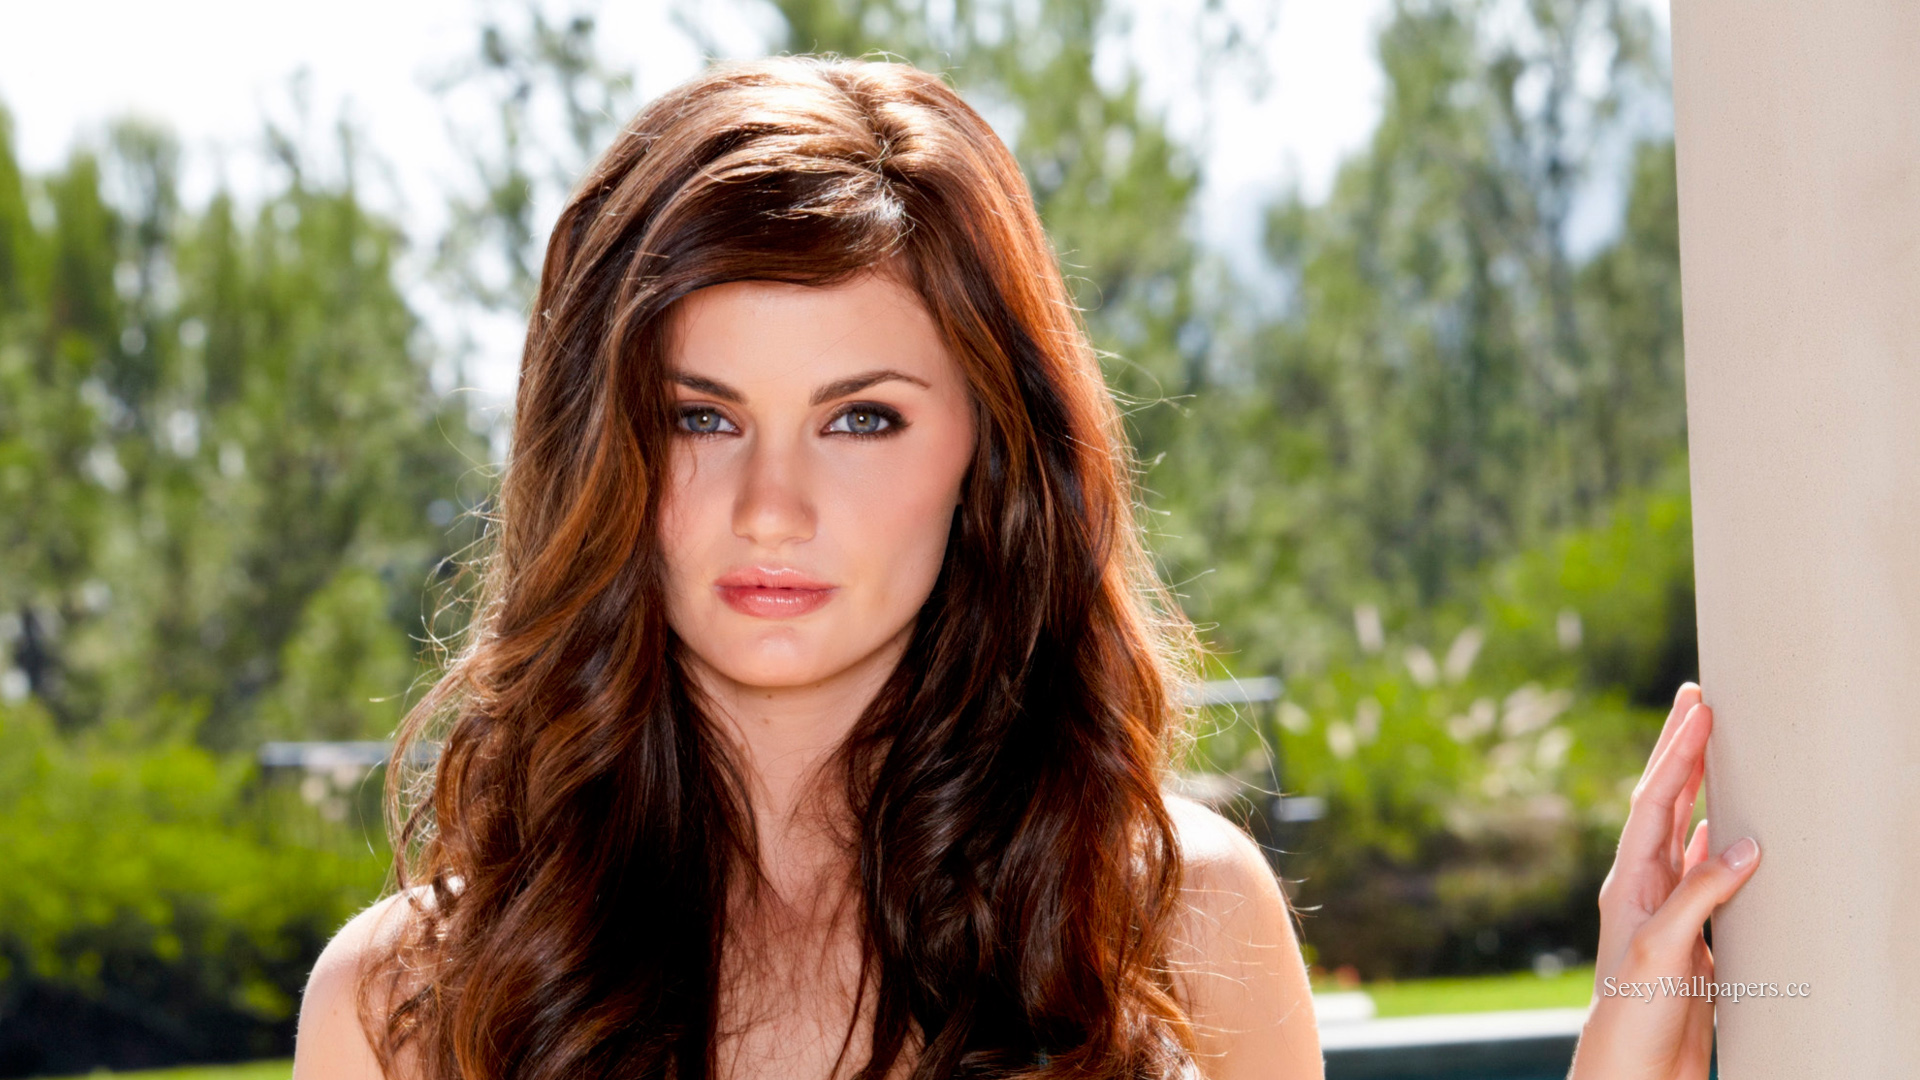 Lily carter hd